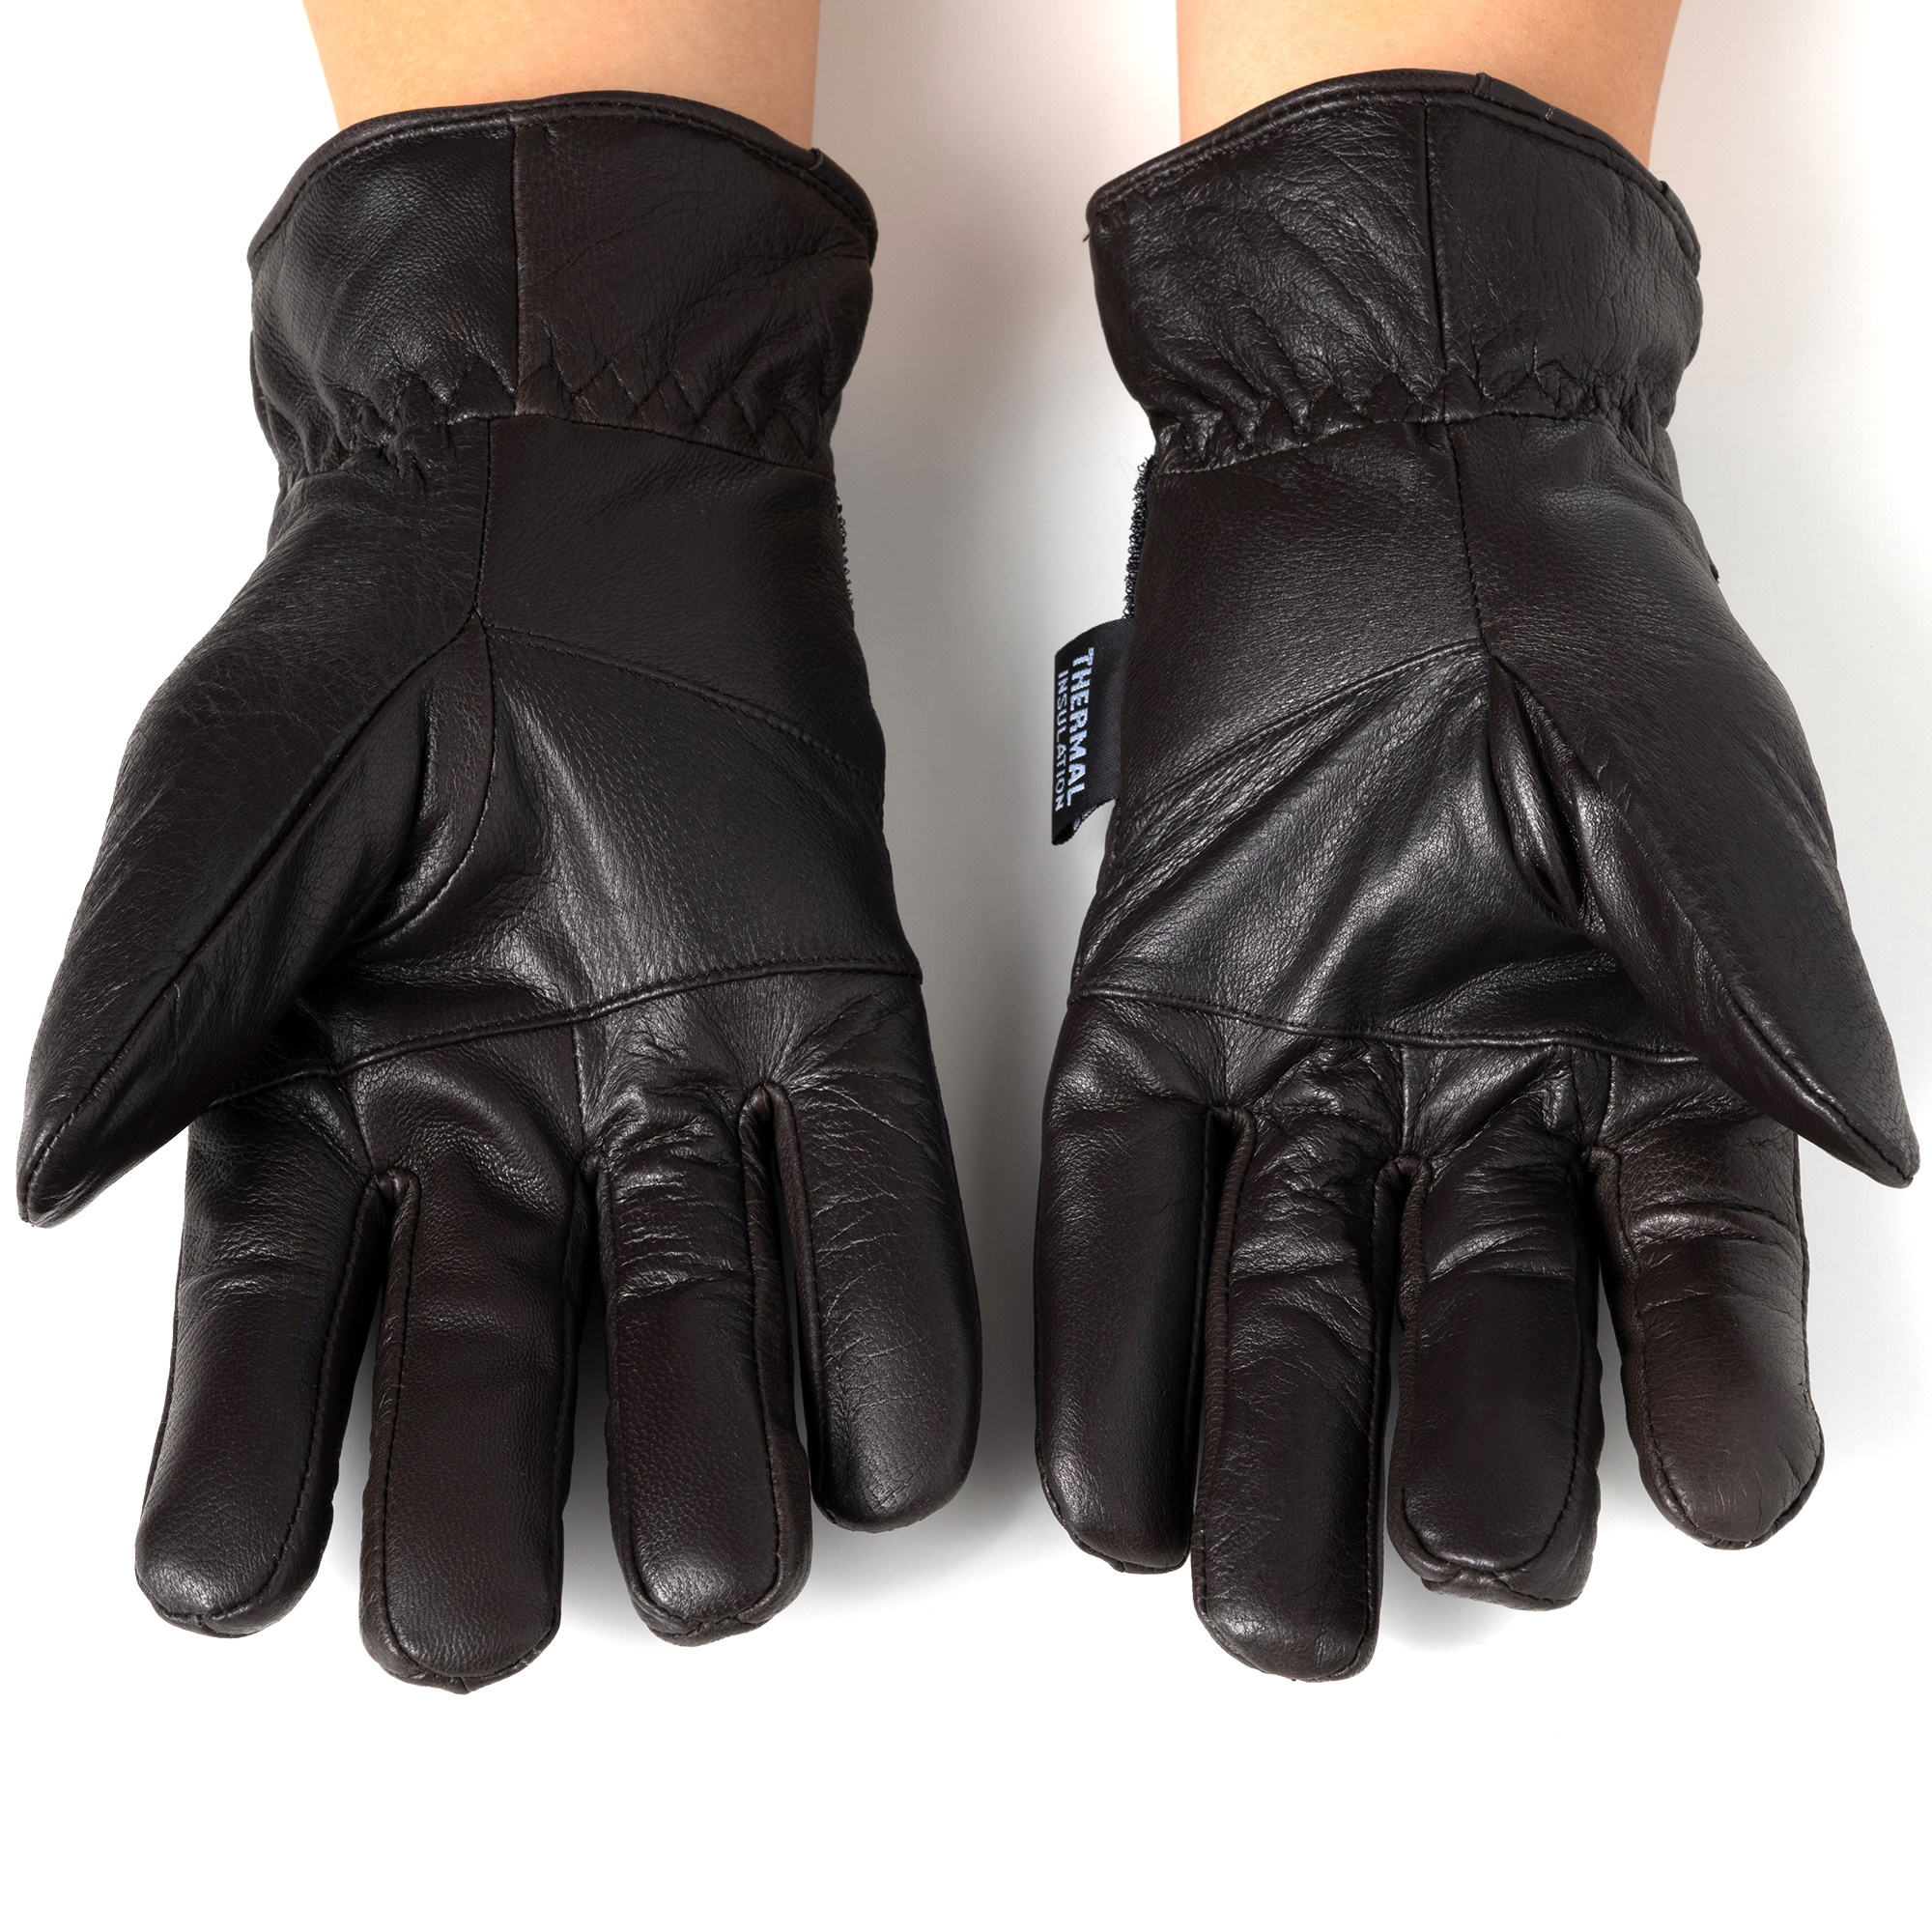 Alpine-Swiss-Mens-Gloves-Dressy-Genuine-Leather-Warm-Thermal-Lined-Wrist-Strap thumbnail 22